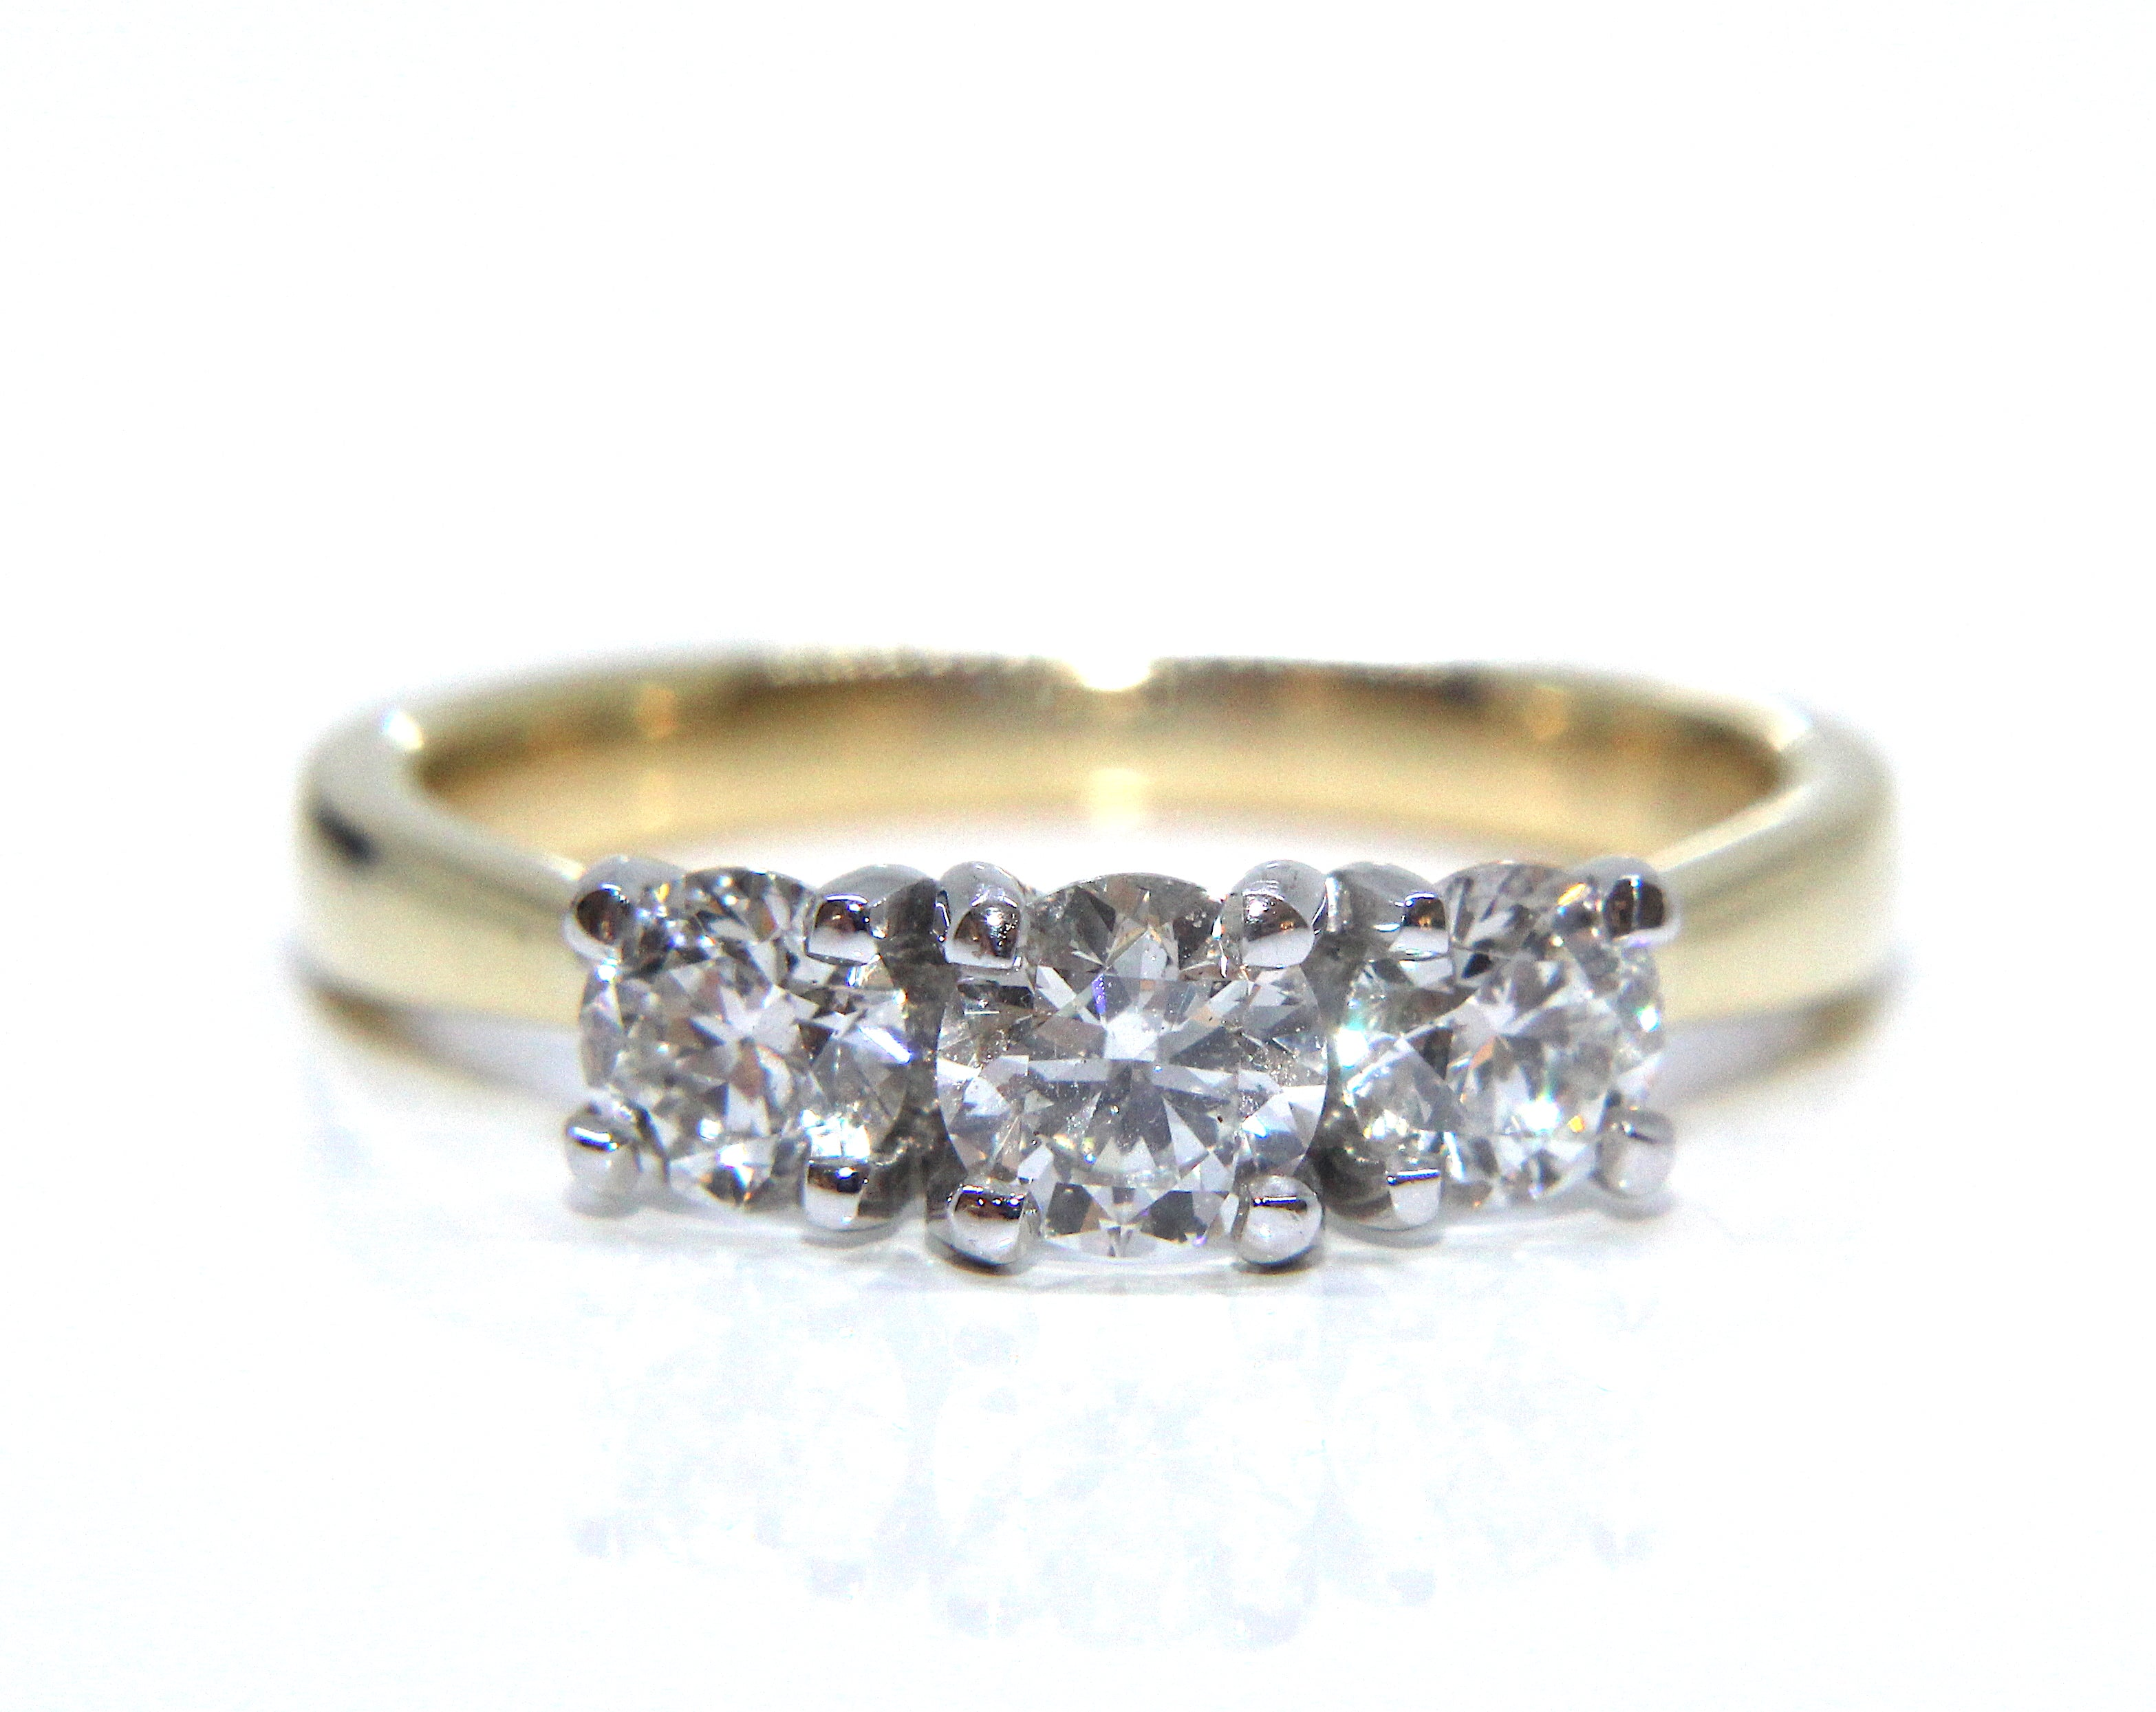 5062da0a1cc91 Campbell 18ct Yellow & White Gold Trilogy Diamond Ring 1.00ct